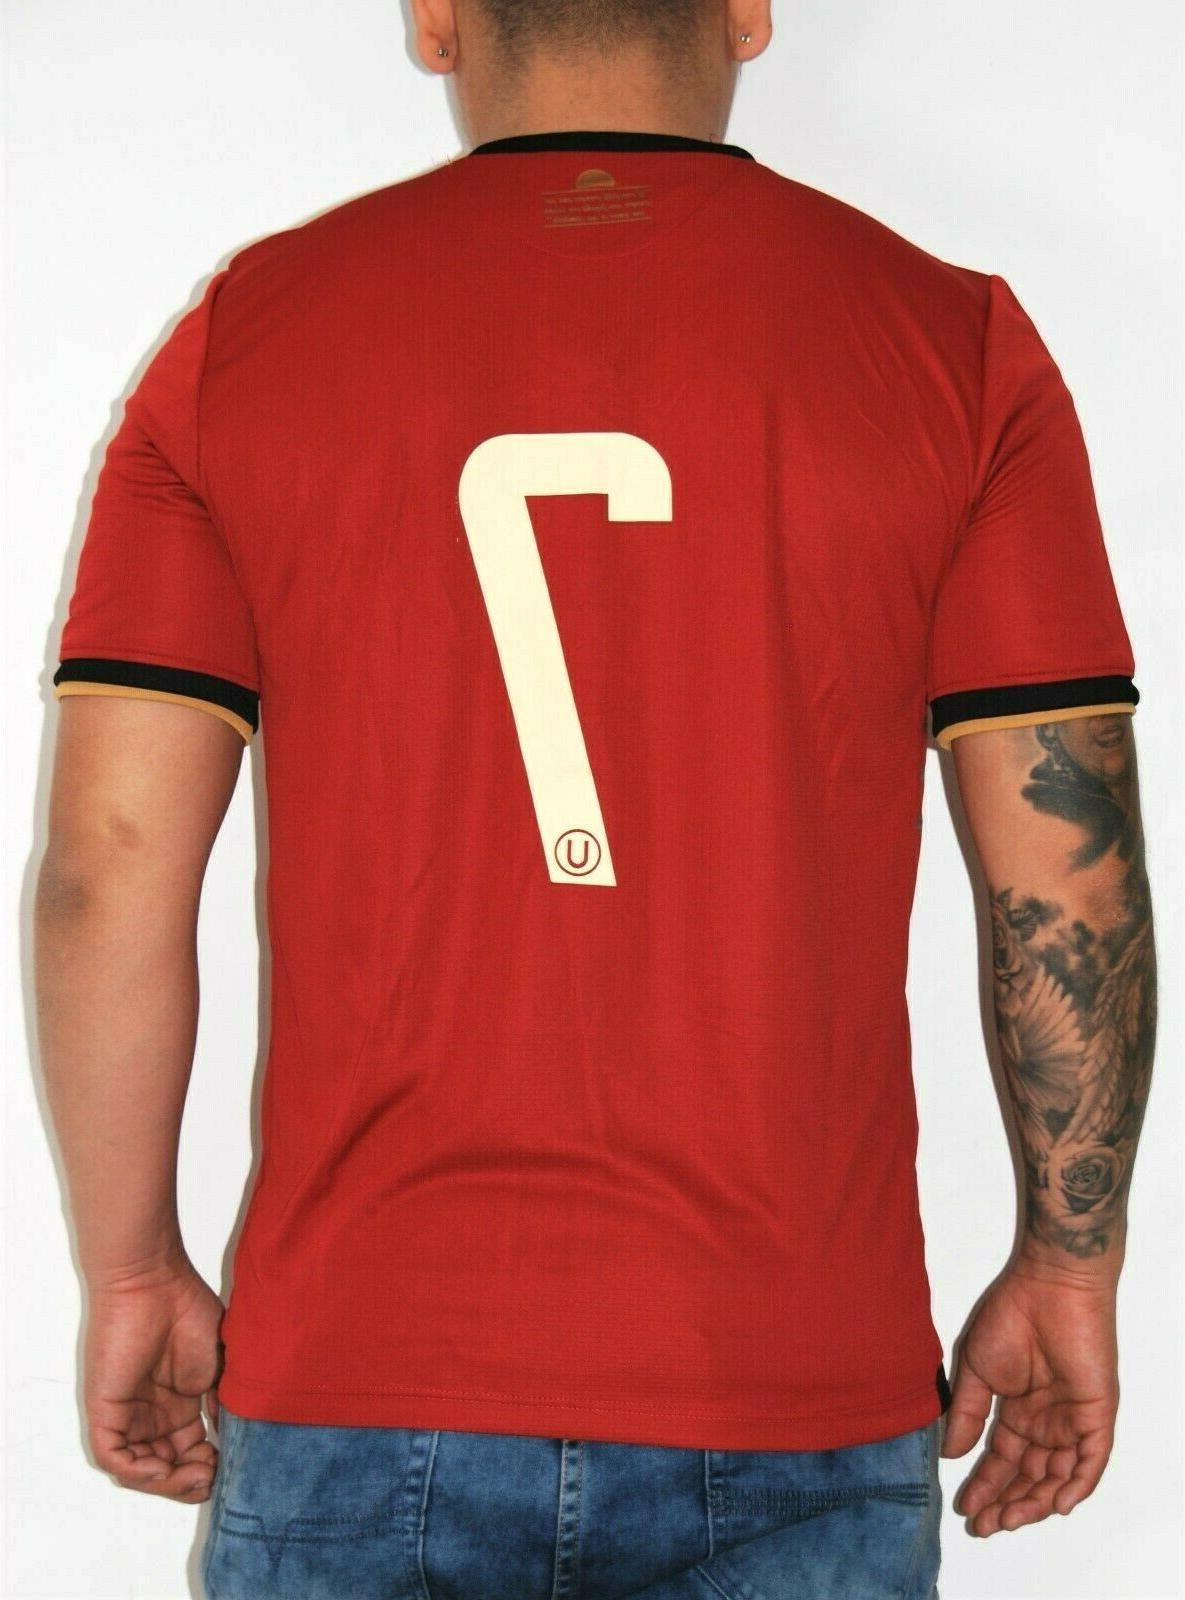 Universitario Peru Soccer Futbol Jersey Red 9 New L Name